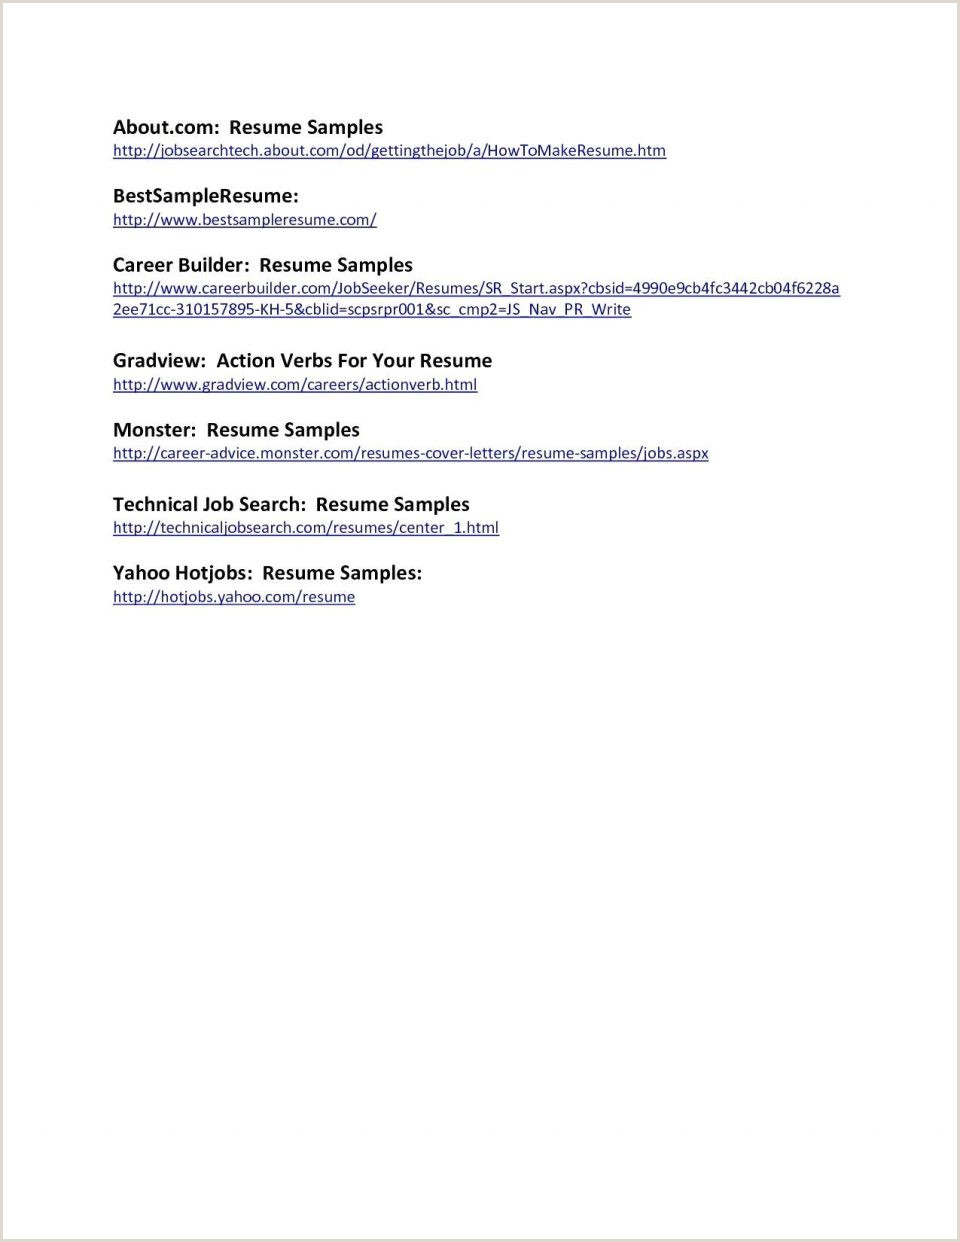 Fresher Resume format Free Download In Ms Word Resume Sample Latest format New Best for Freshers 2019